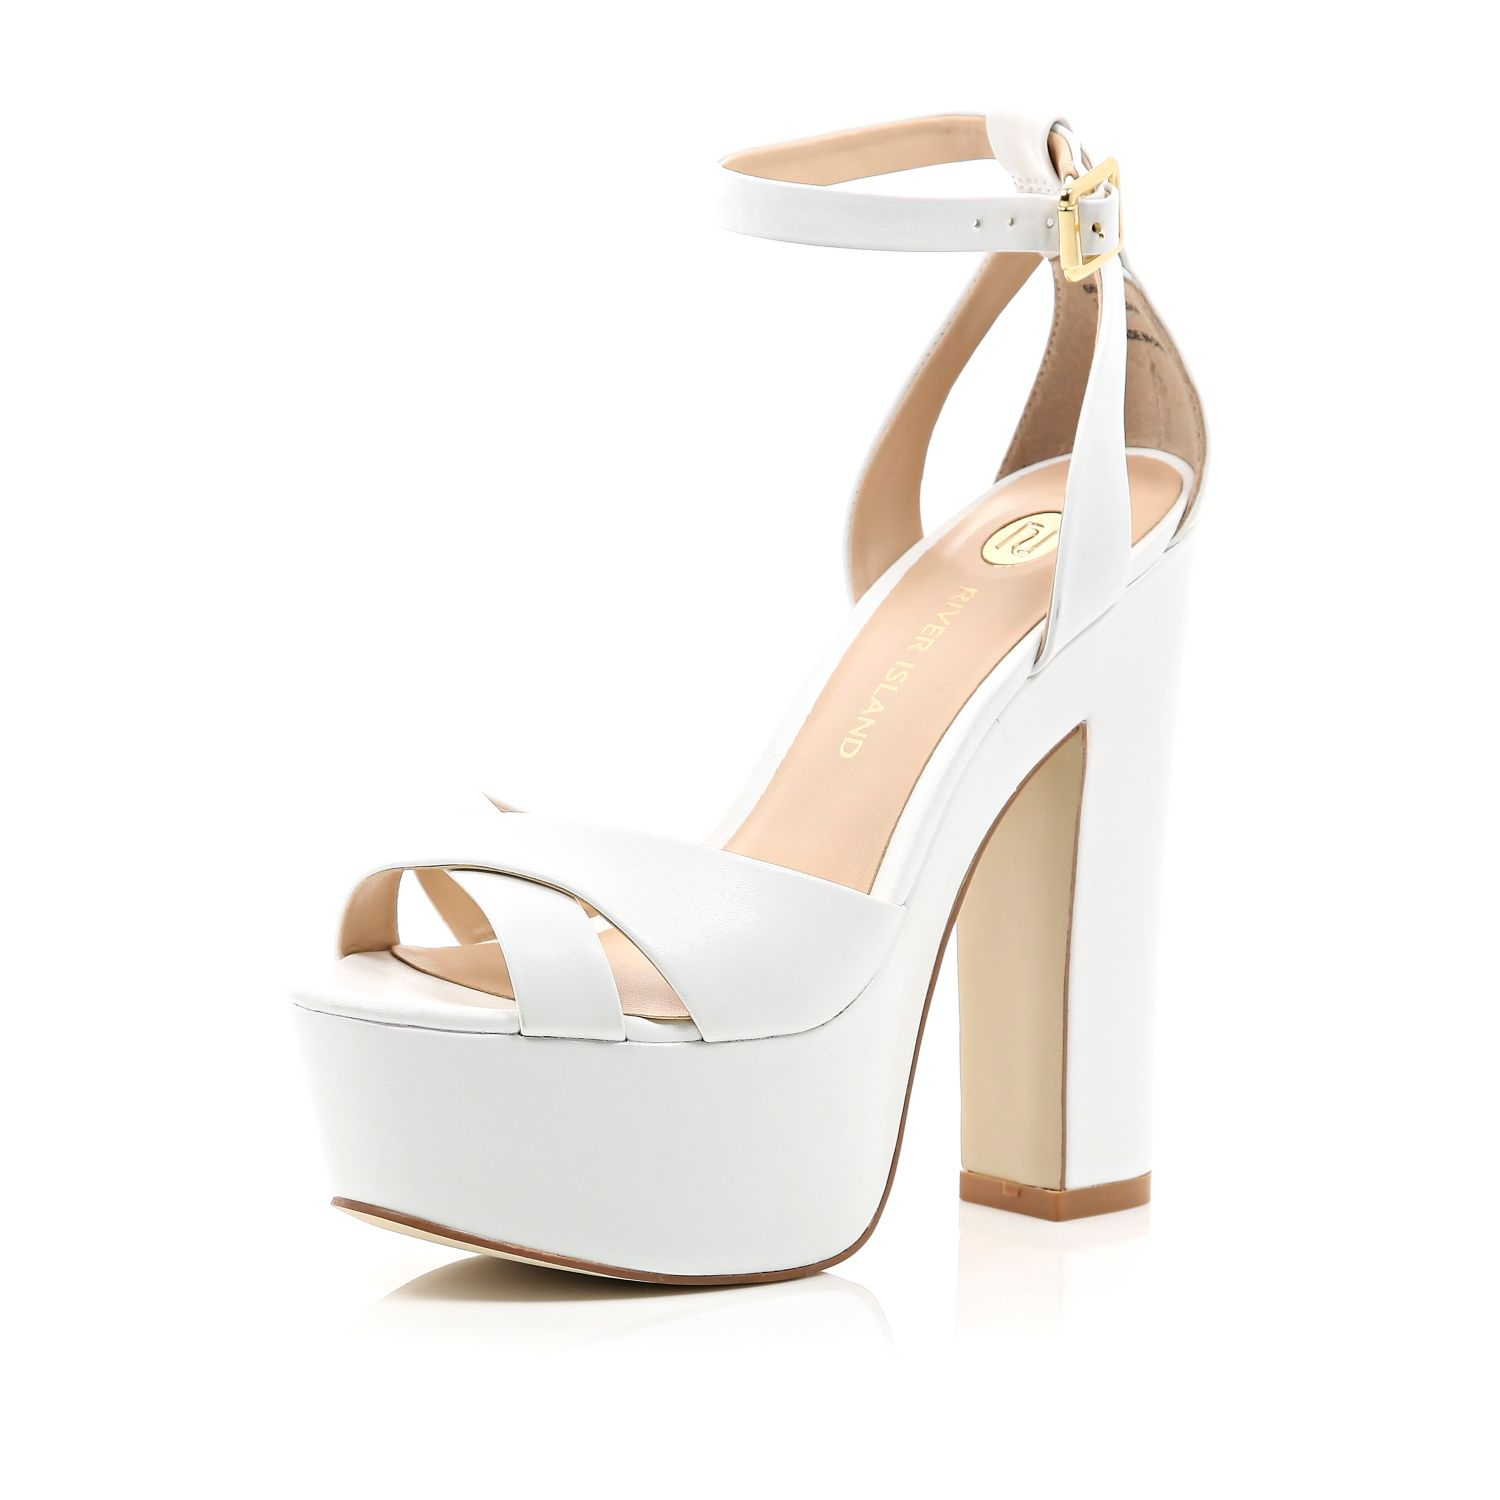 Lyst - River island White Leather Chunky Block Platform Heels in White